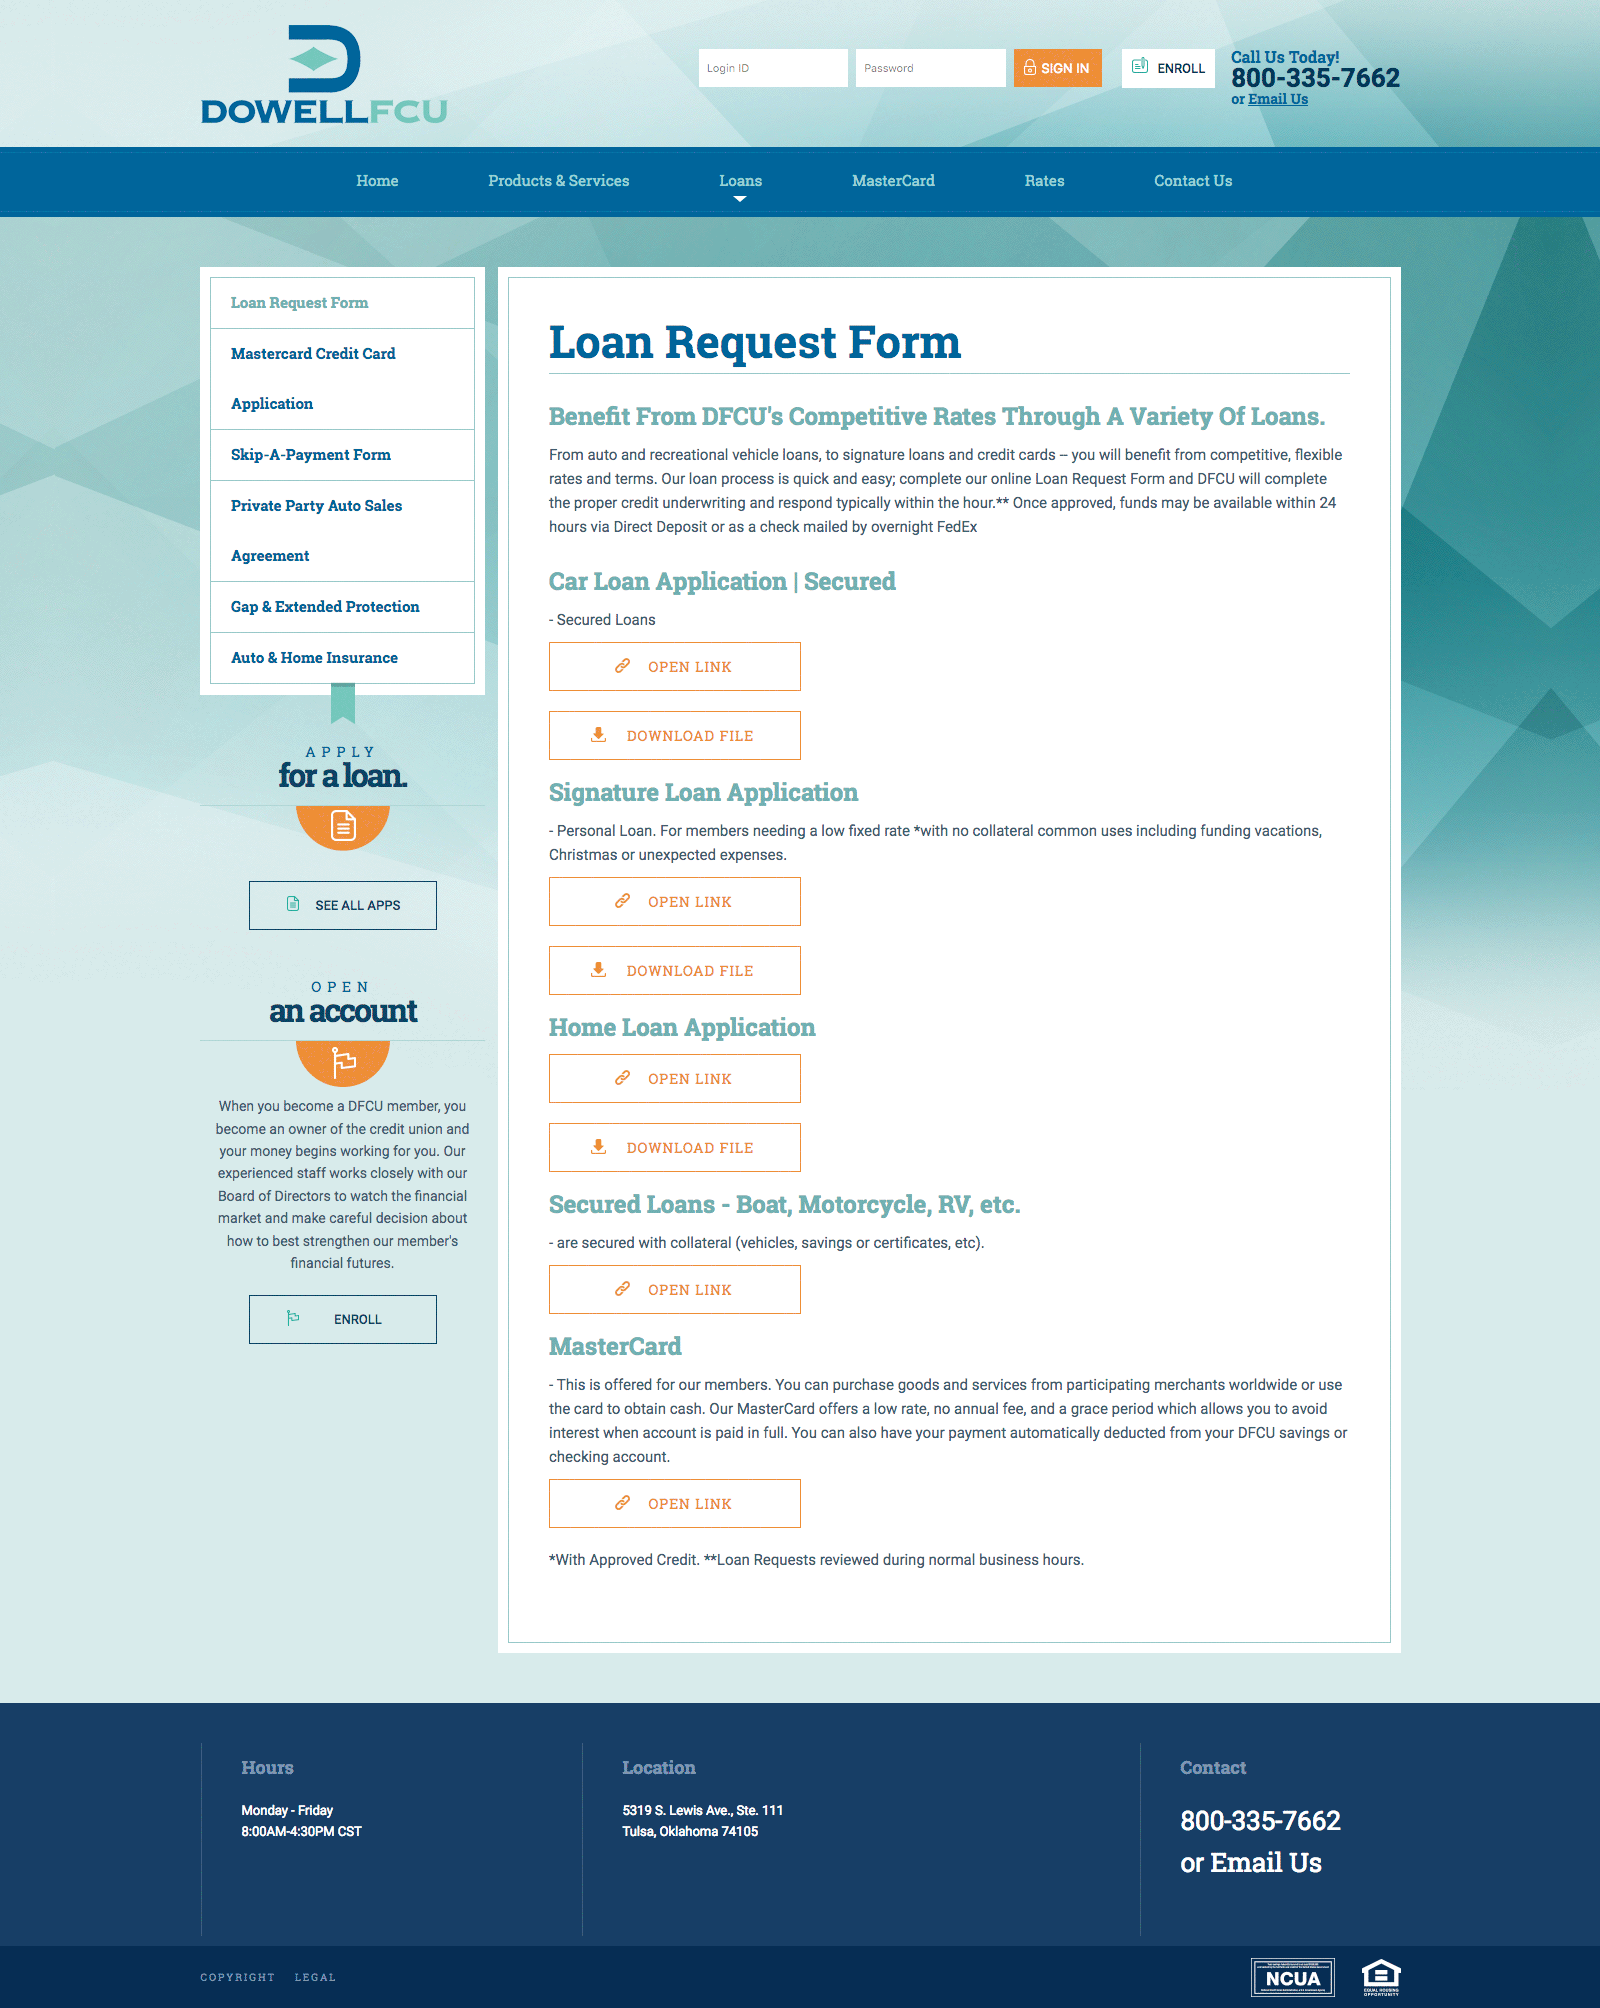 Dowell FCU Loan Request Form Page